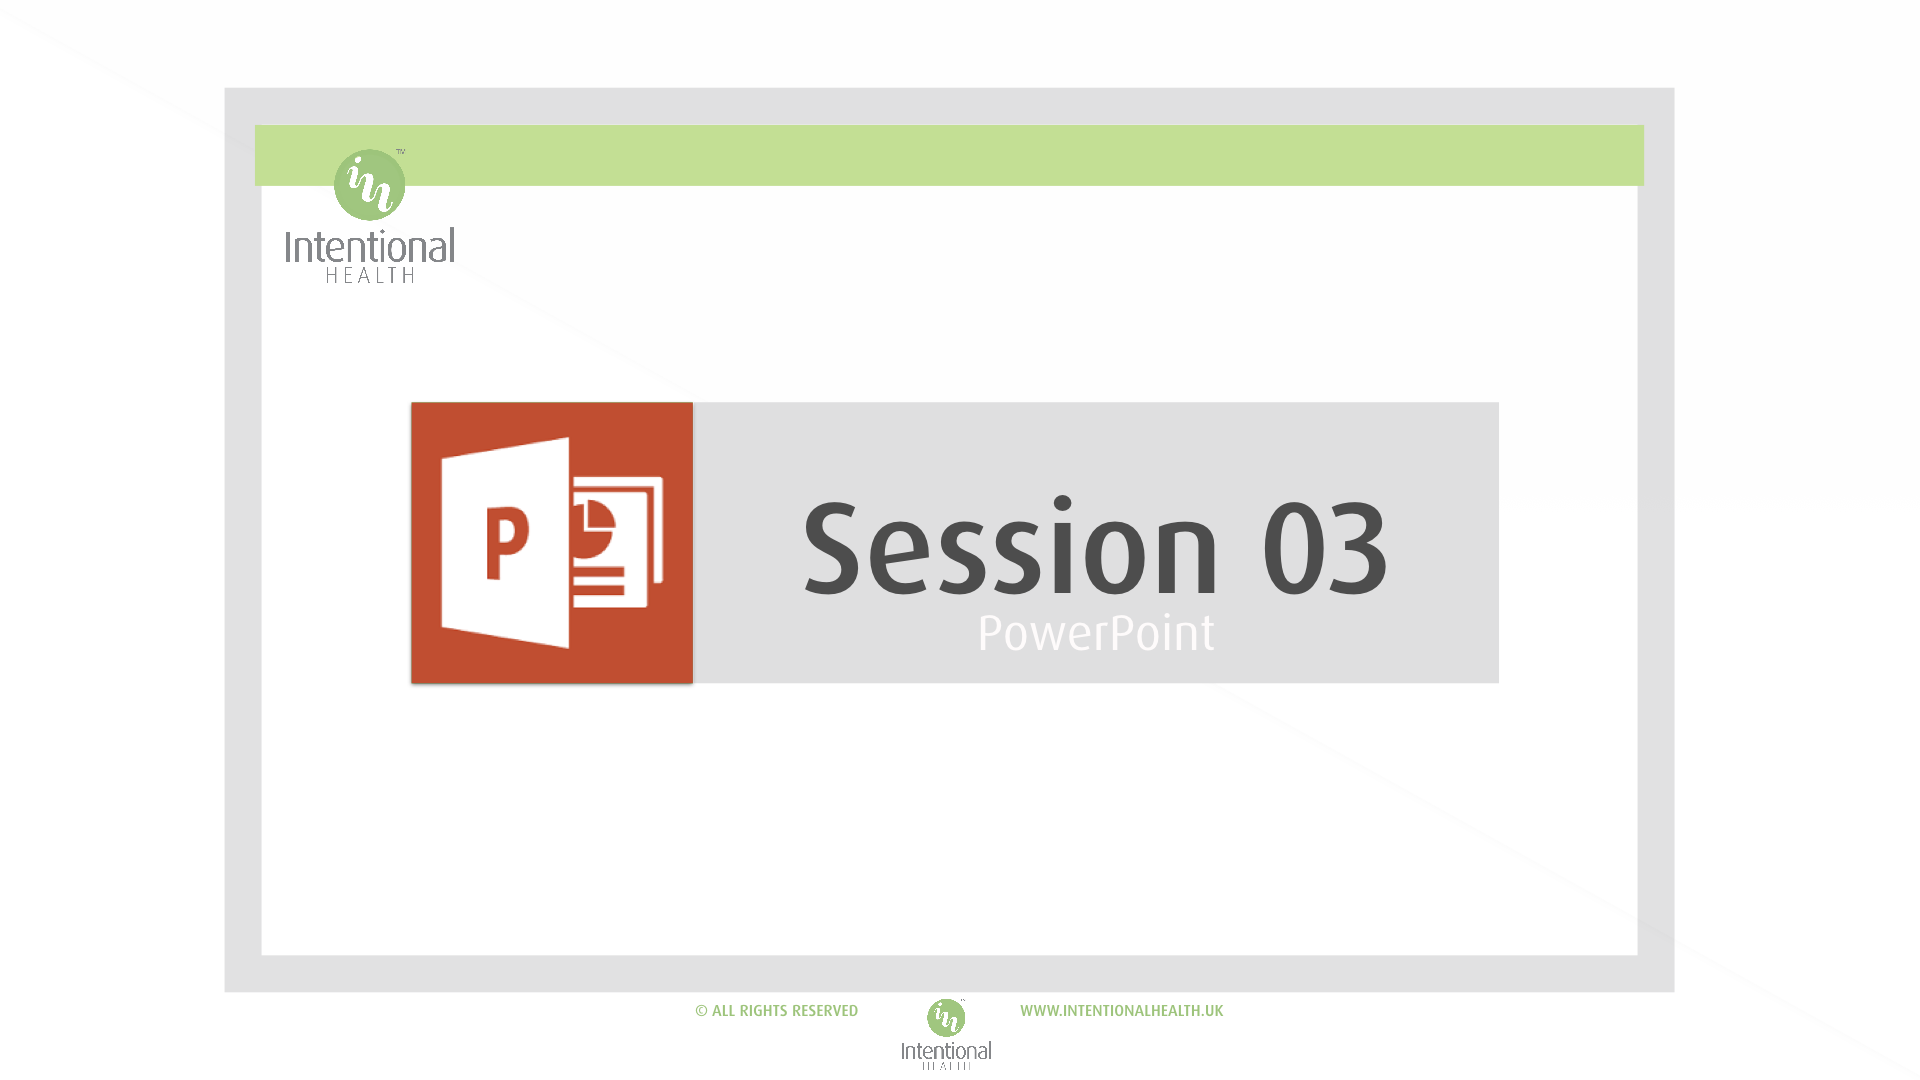 Session 03 Powerpoint